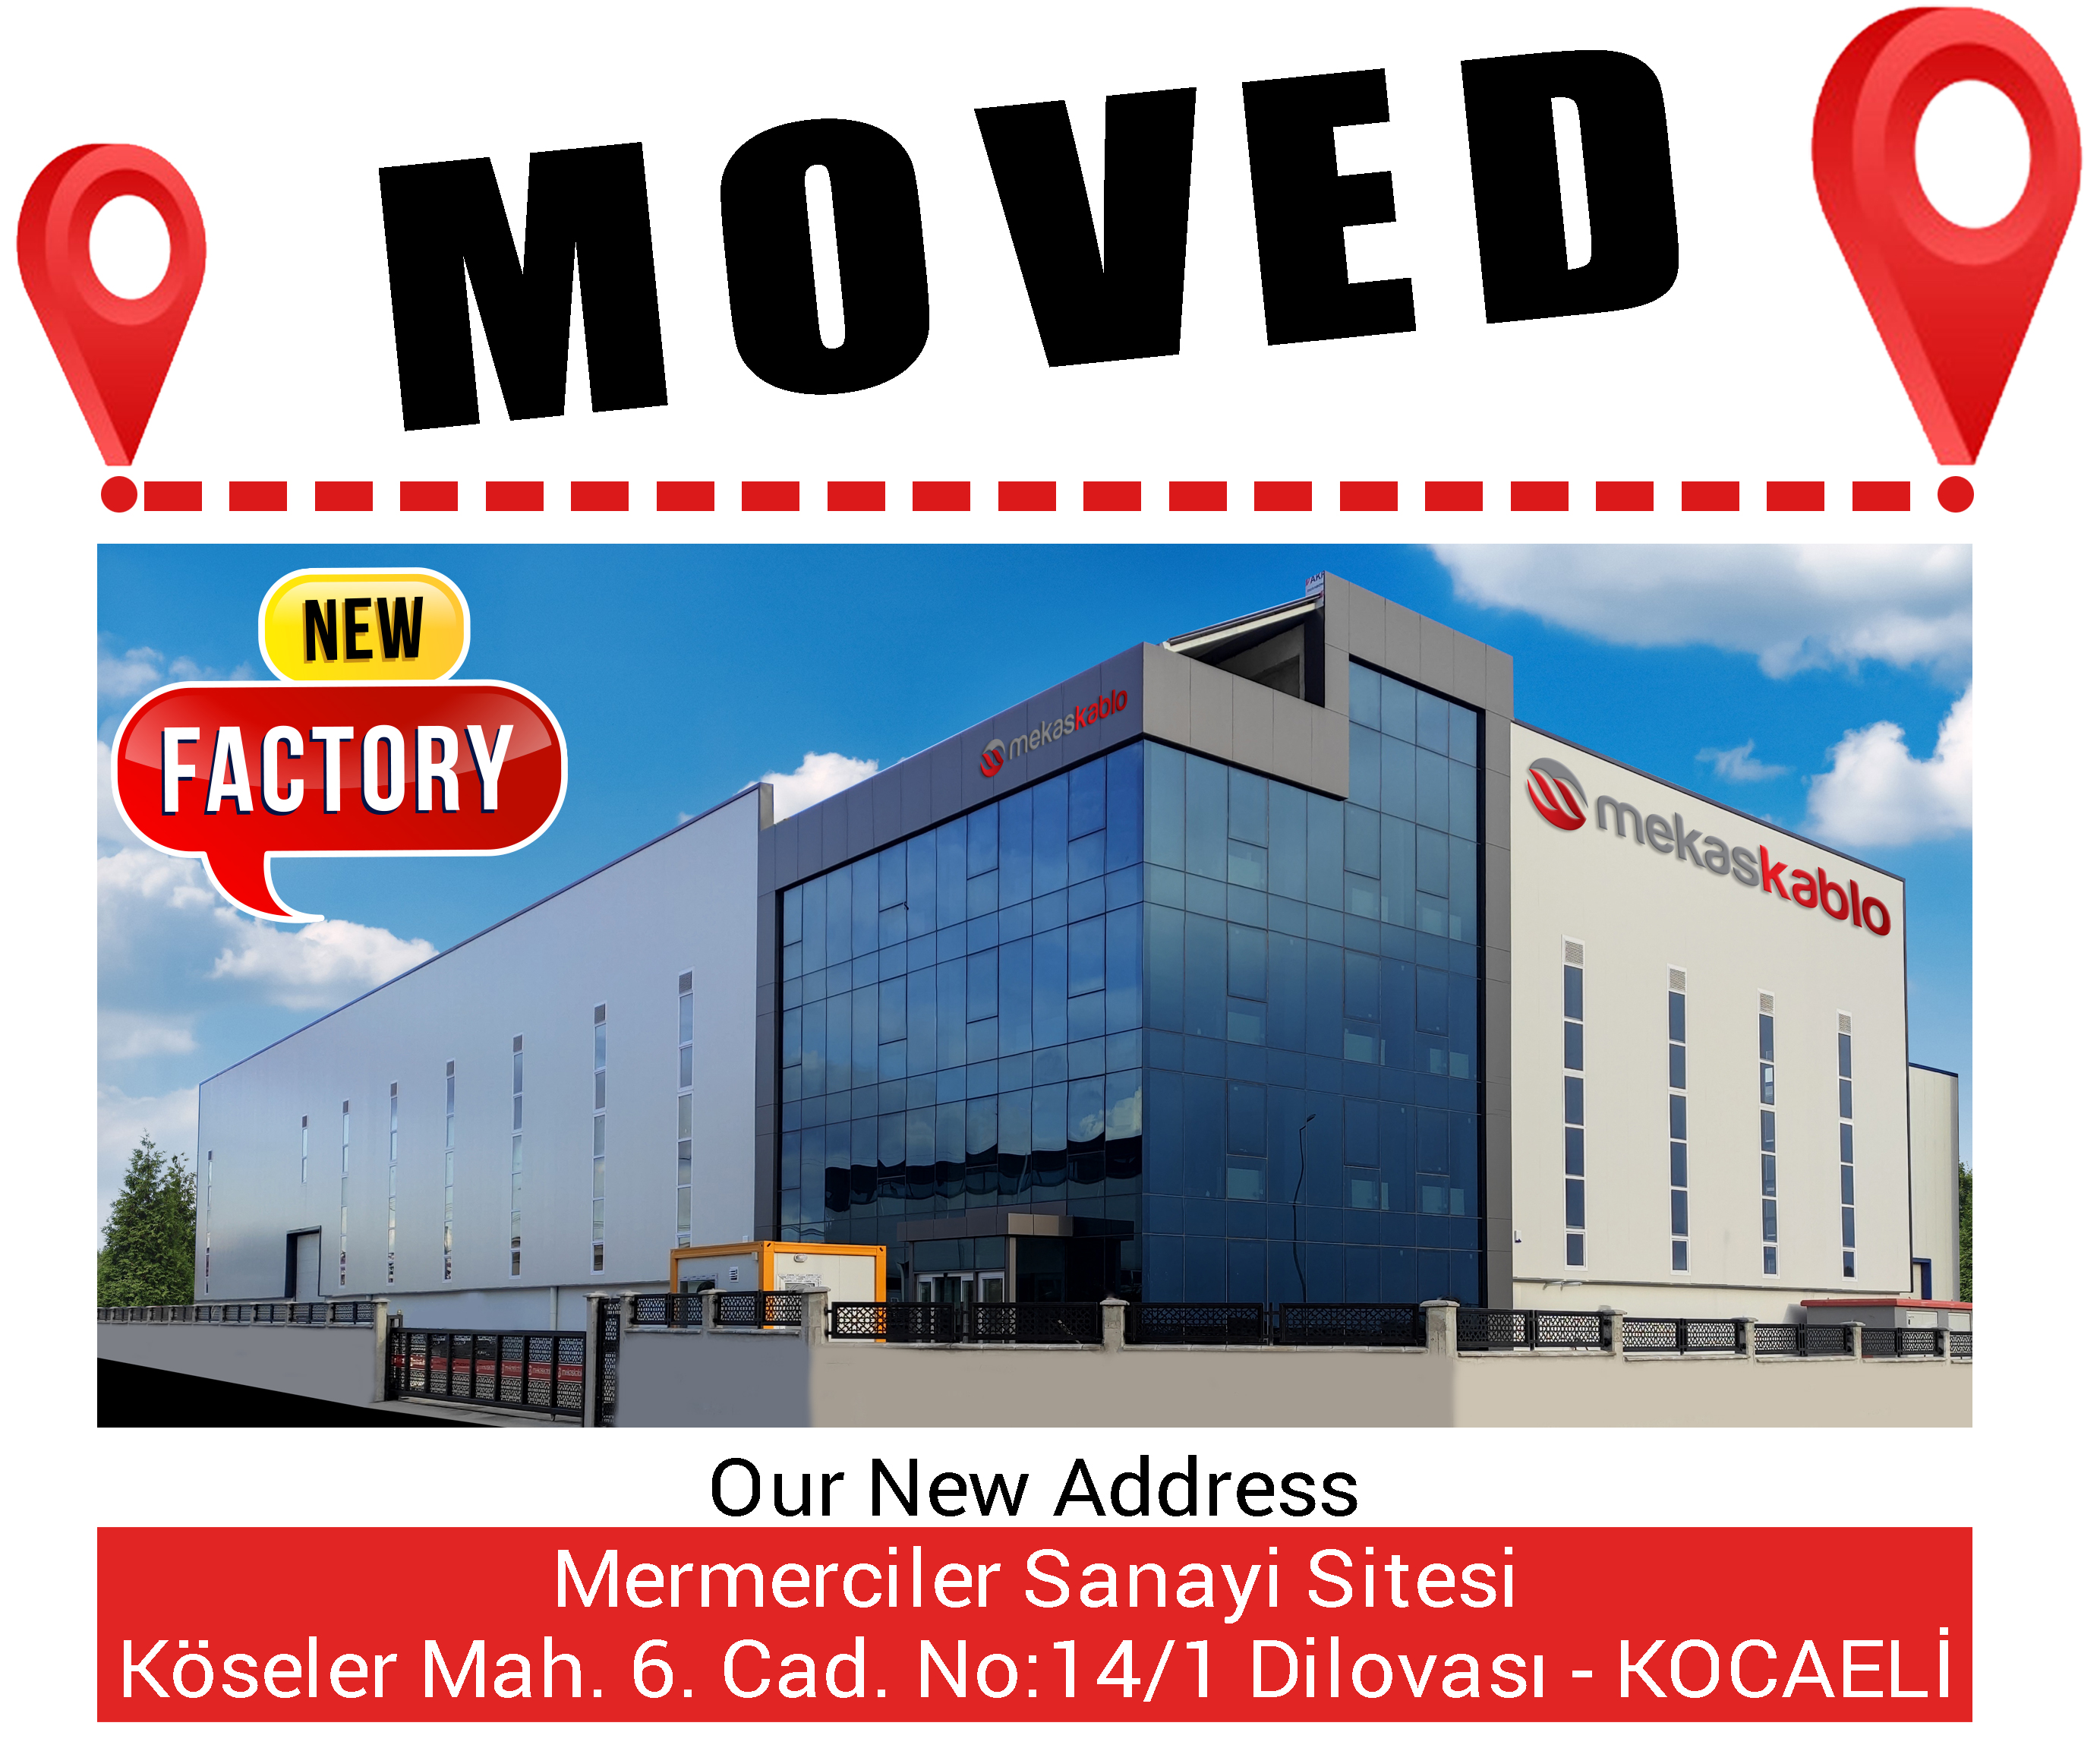 OUR FACTORY MOVED